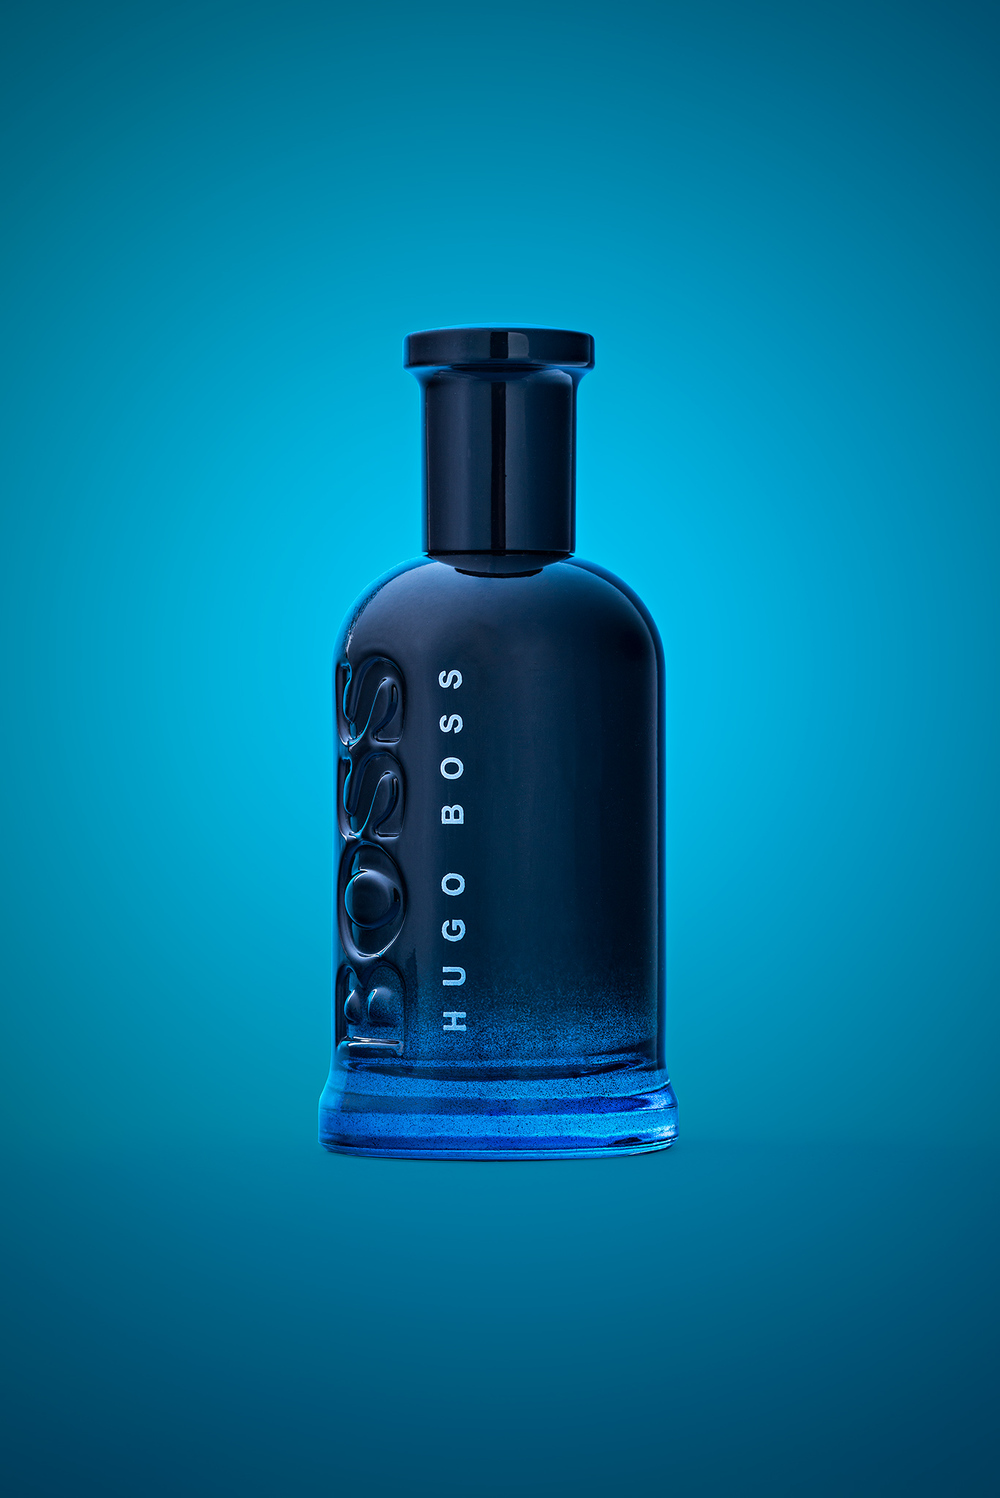 product-photographer-budapest-hugoboss-bottlenight-testshoot-marton-botond.jpg